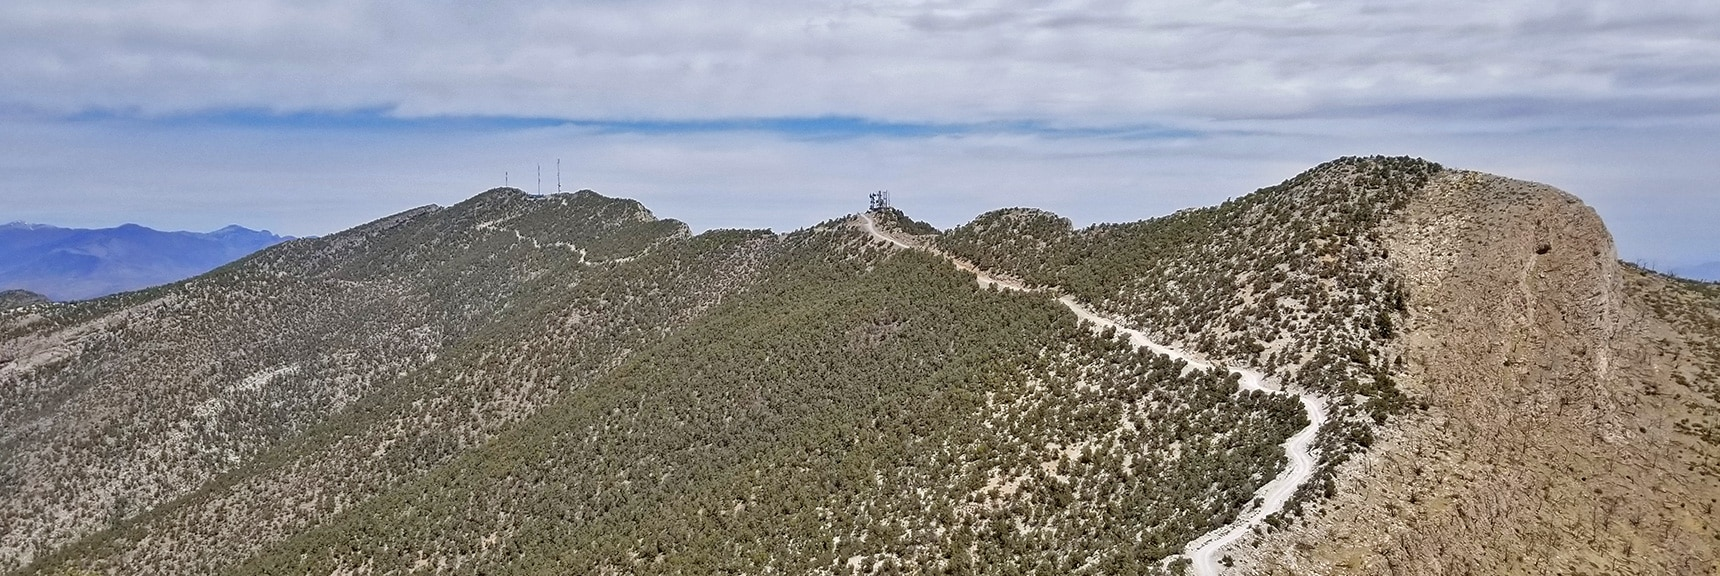 Mid-Summit, North Summit and Approach Road Viewed from the South Summit | Potosi Mountain Spring Mountains Nevada